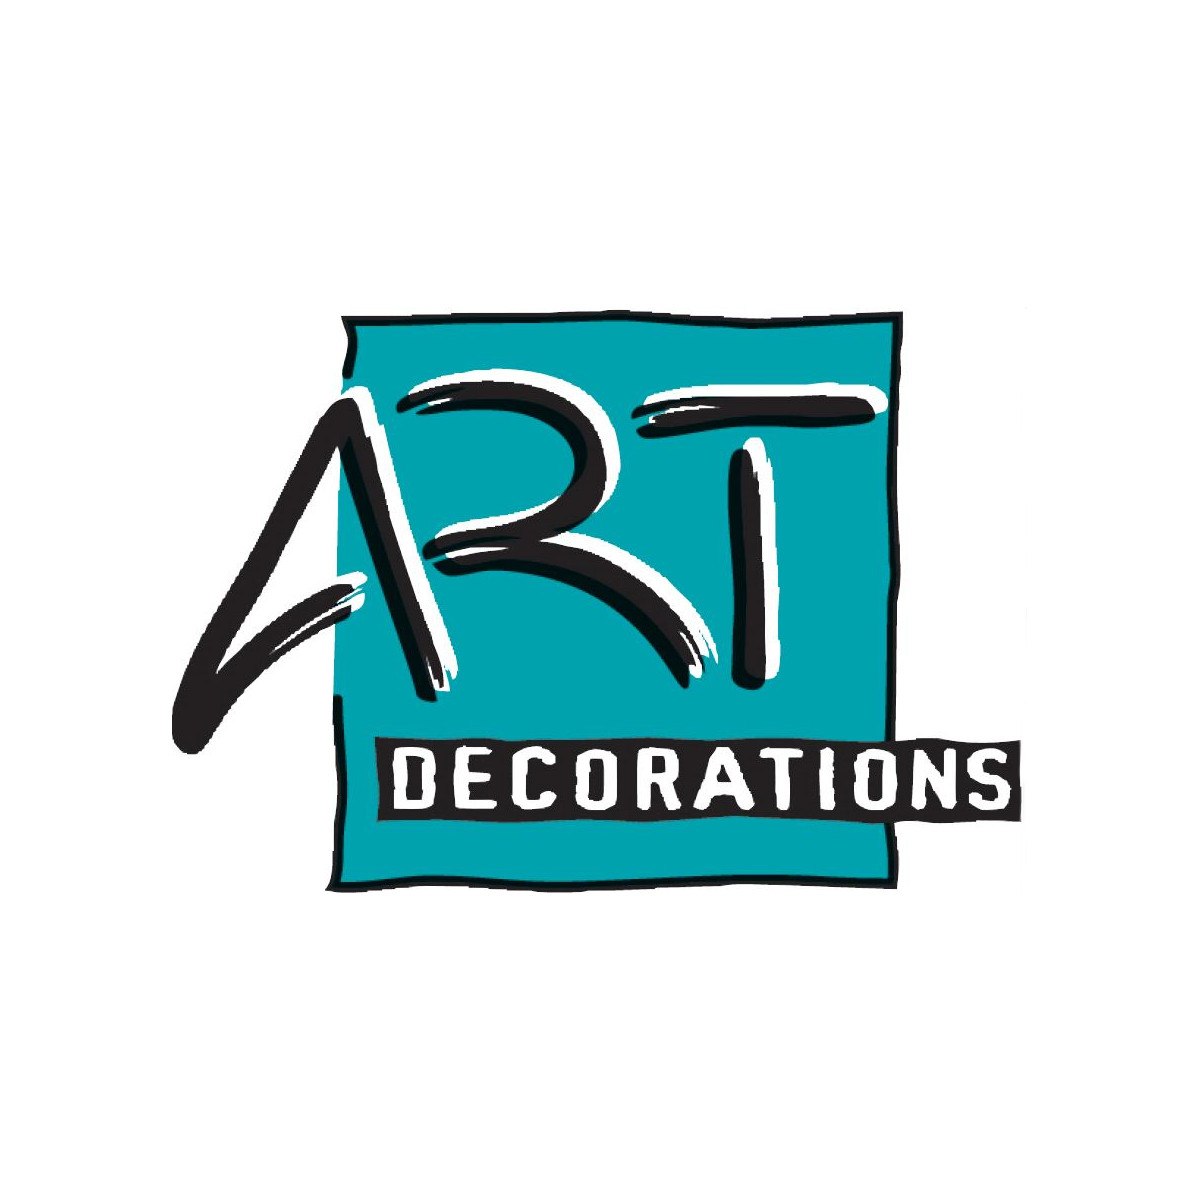 art decorations andrea r mmelt weber schwaig